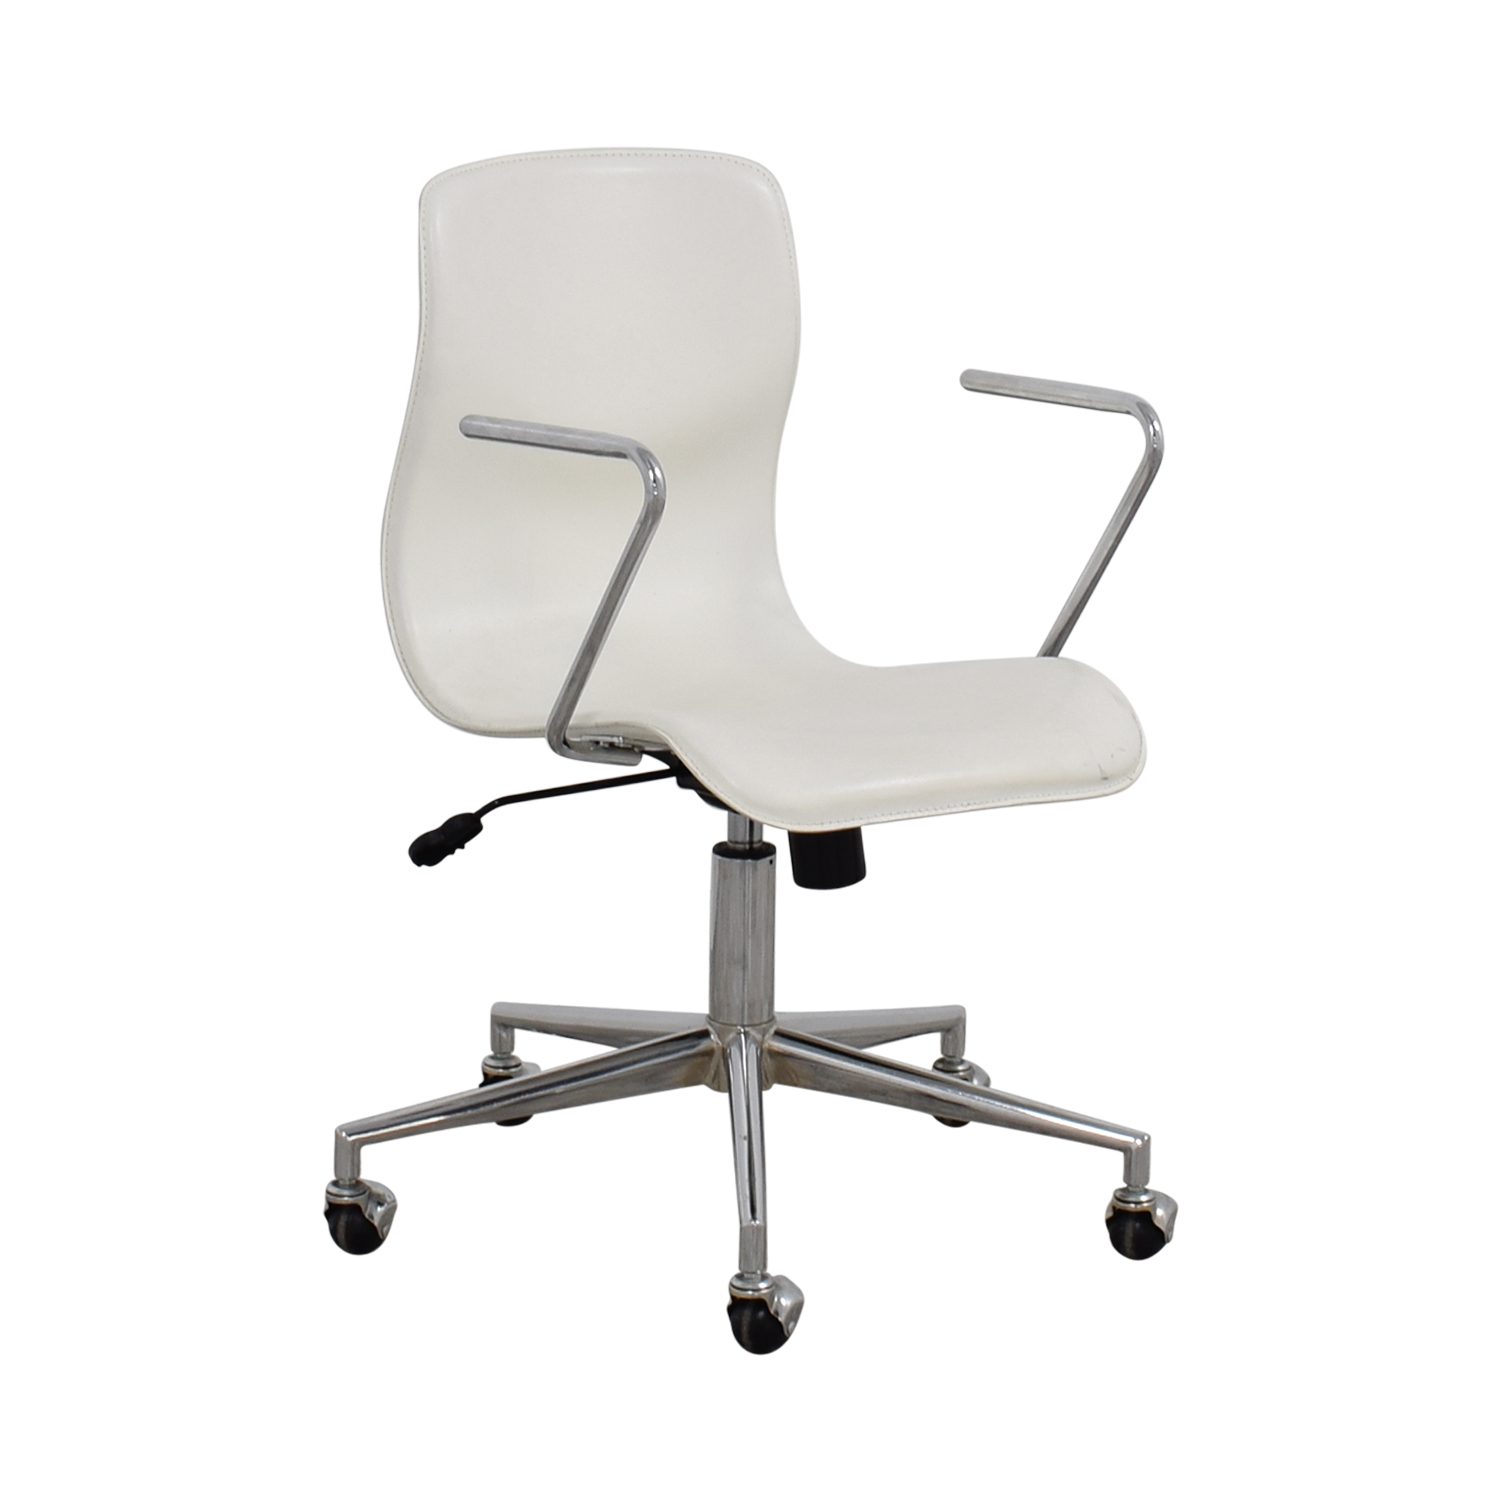 Office Chairs White 36 Off White Office Chair Chairs